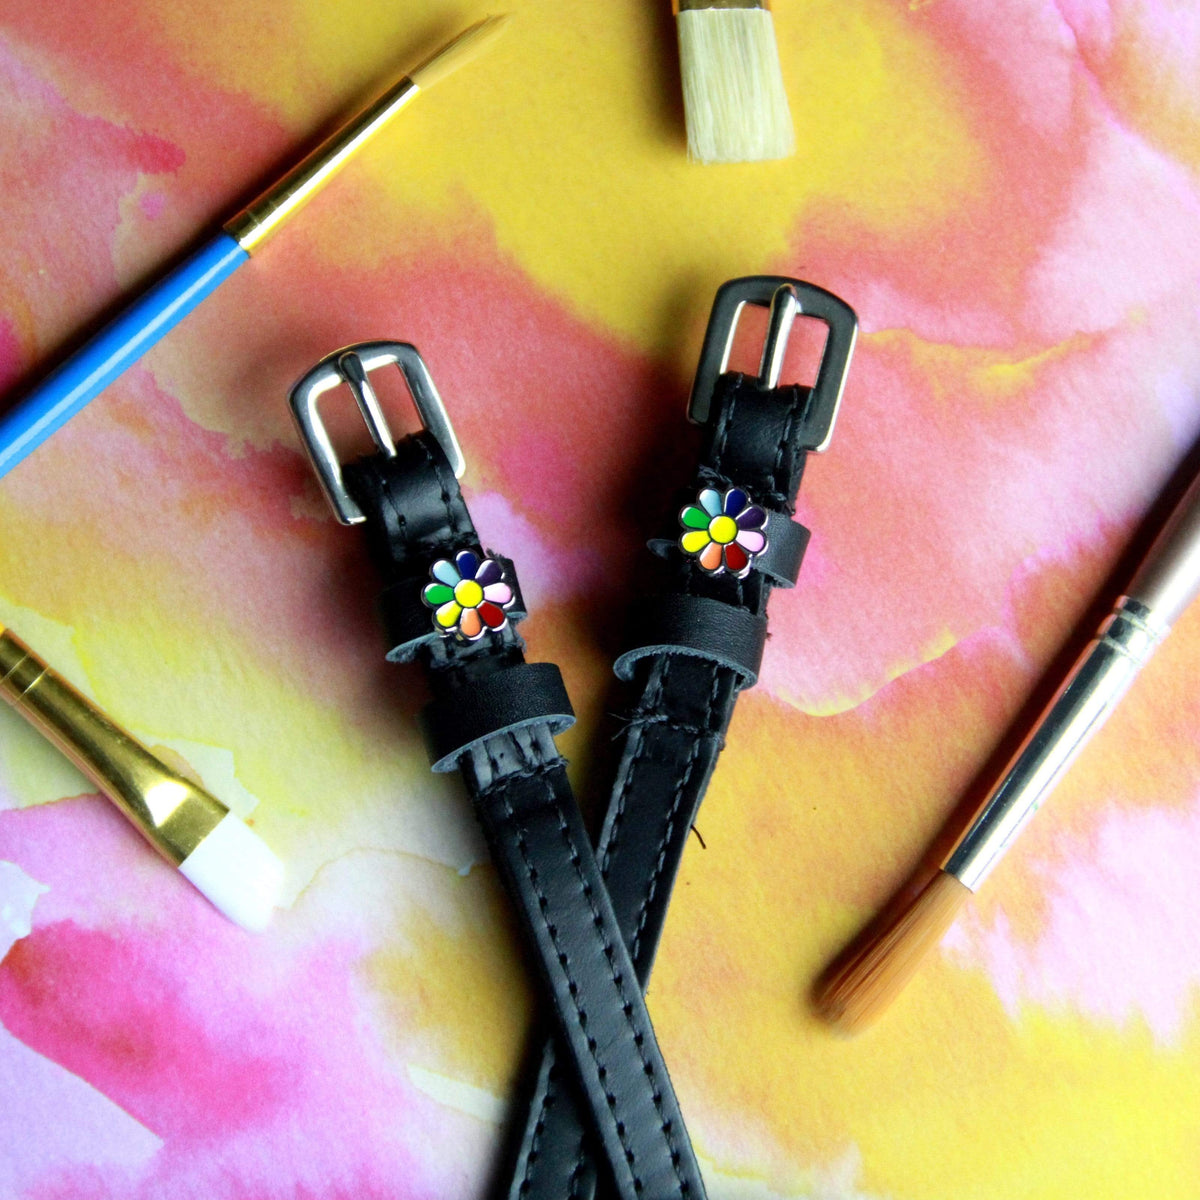 ManeJane Spur Straps Mane Jane Spur Straps / FLOWER POWER equestrian team apparel online tack store mobile tack store custom farm apparel custom show stable clothing equestrian lifestyle horse show clothing riding clothes horses equestrian tack store